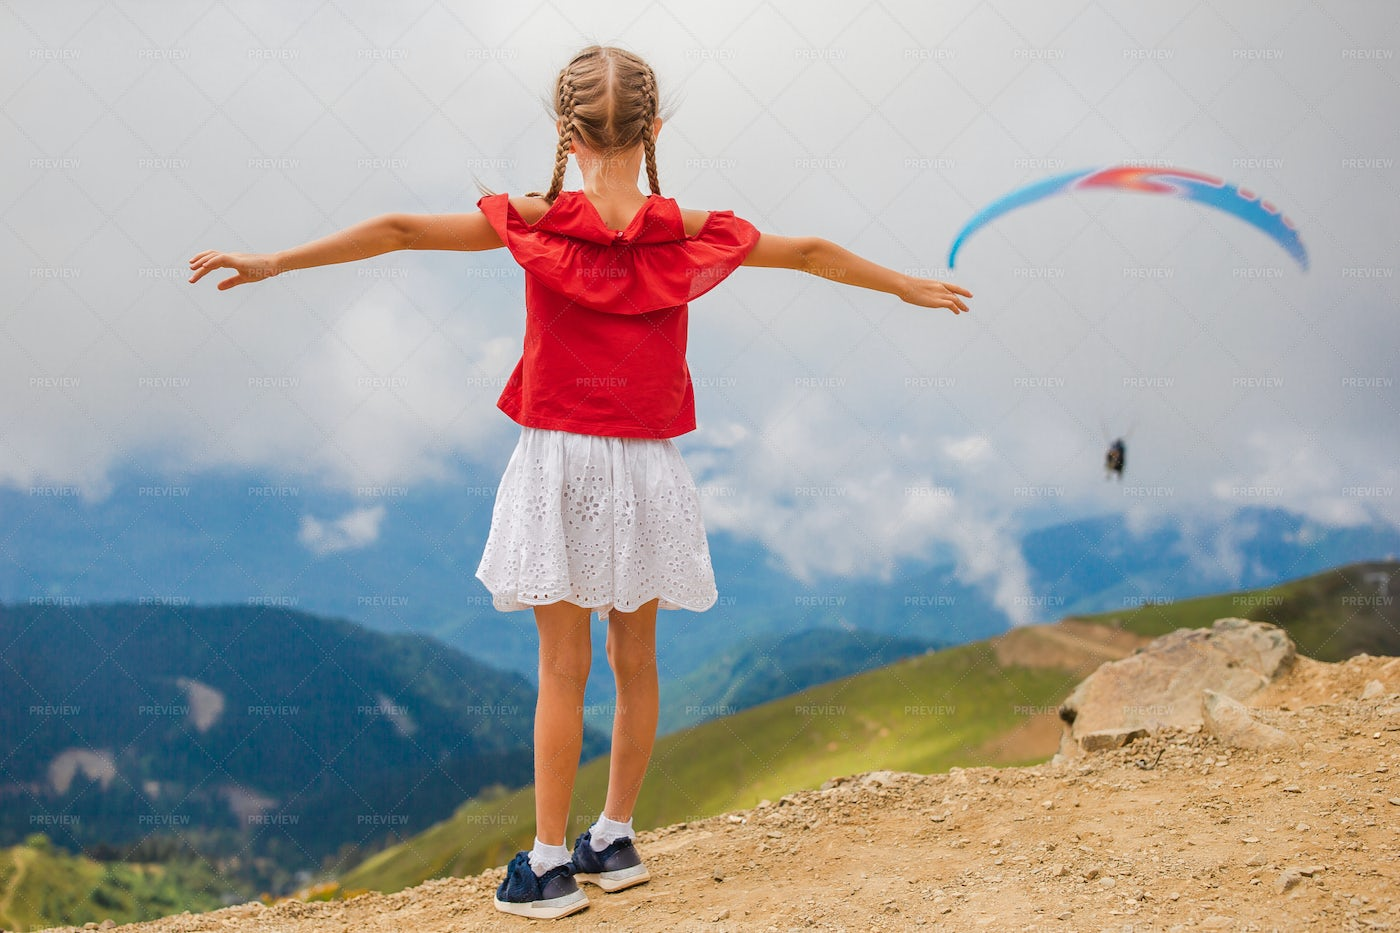 Little Girl Opening Her Arms: Stock Photos